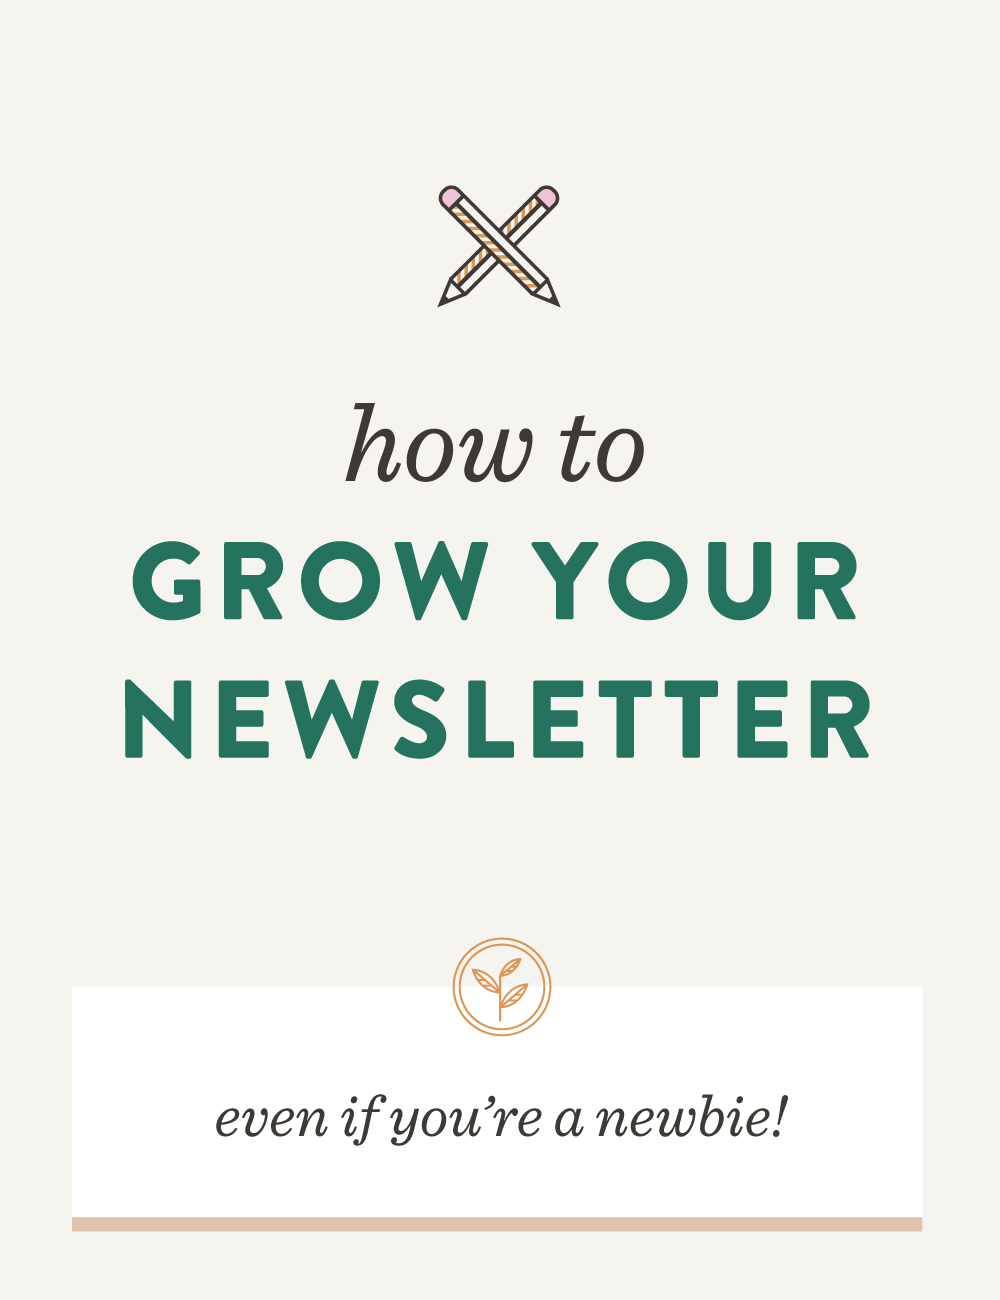 How to grow your newsletter, even if you're a newbie! // Curious on how to start growing your newsletter and build your audience in a non-salesy way? I'm sharing my secrets on growing your newsletter list in an authentic and intentional way.